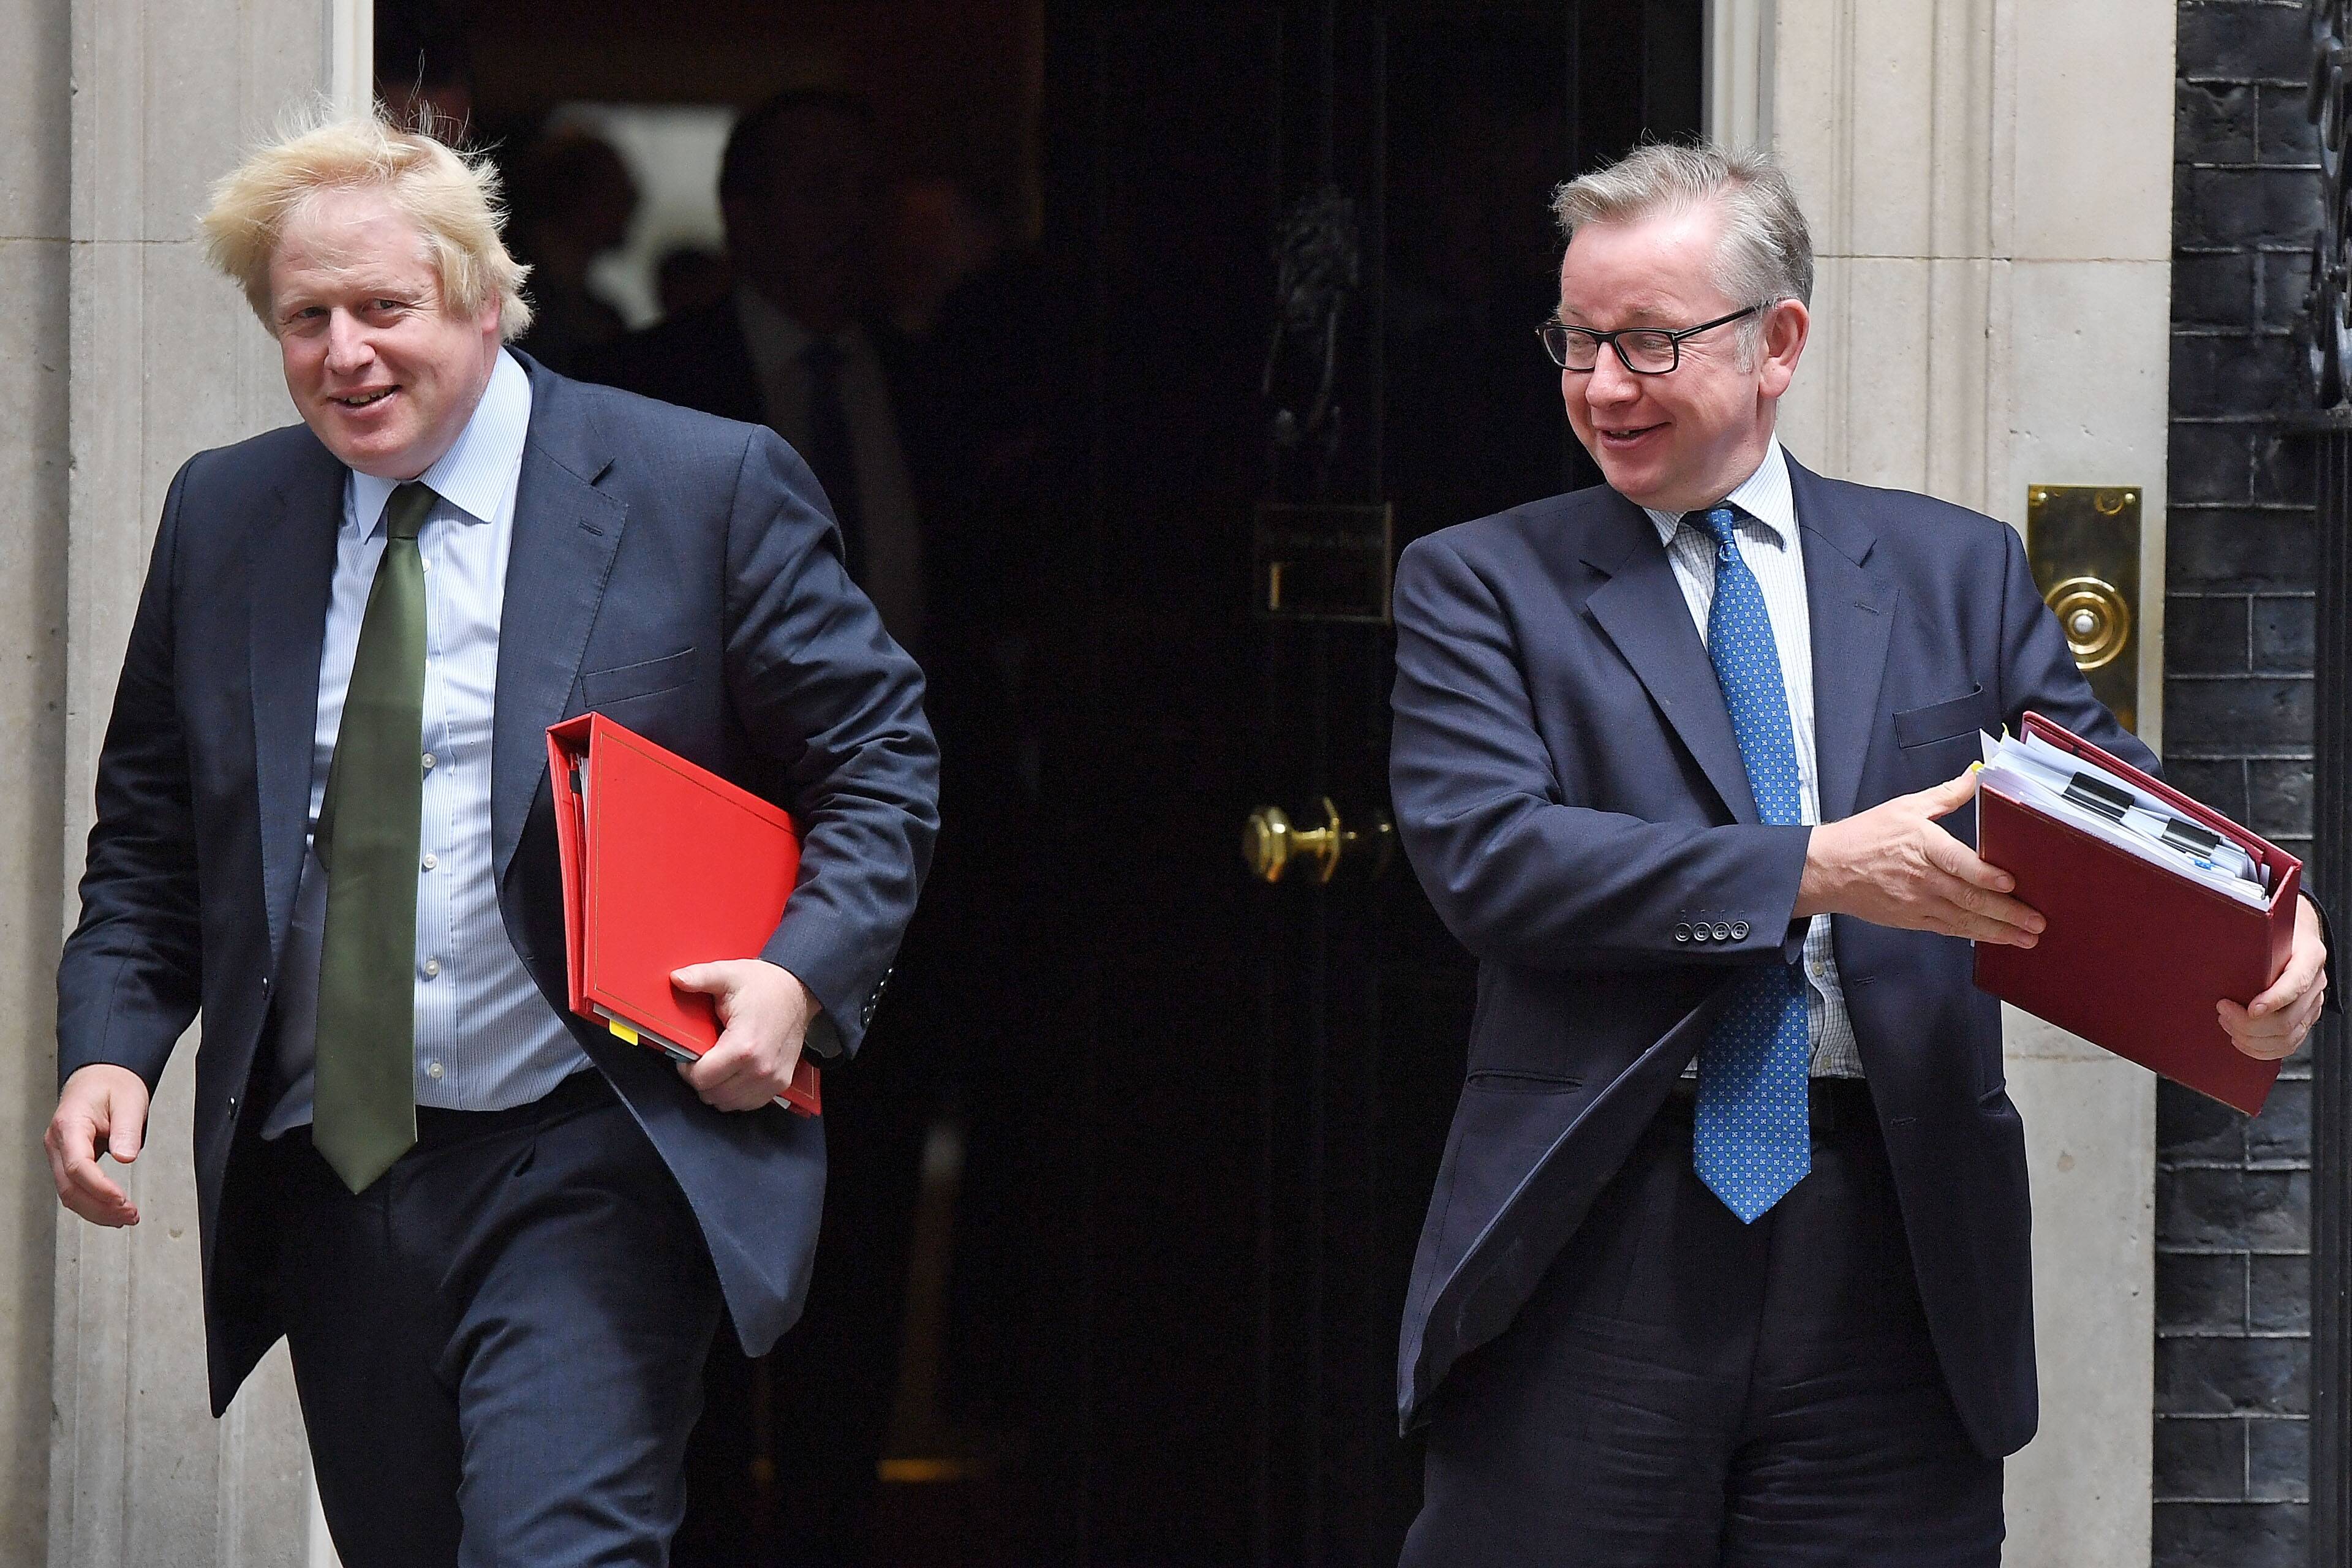 The race to be the next British prime minister, briefly explained